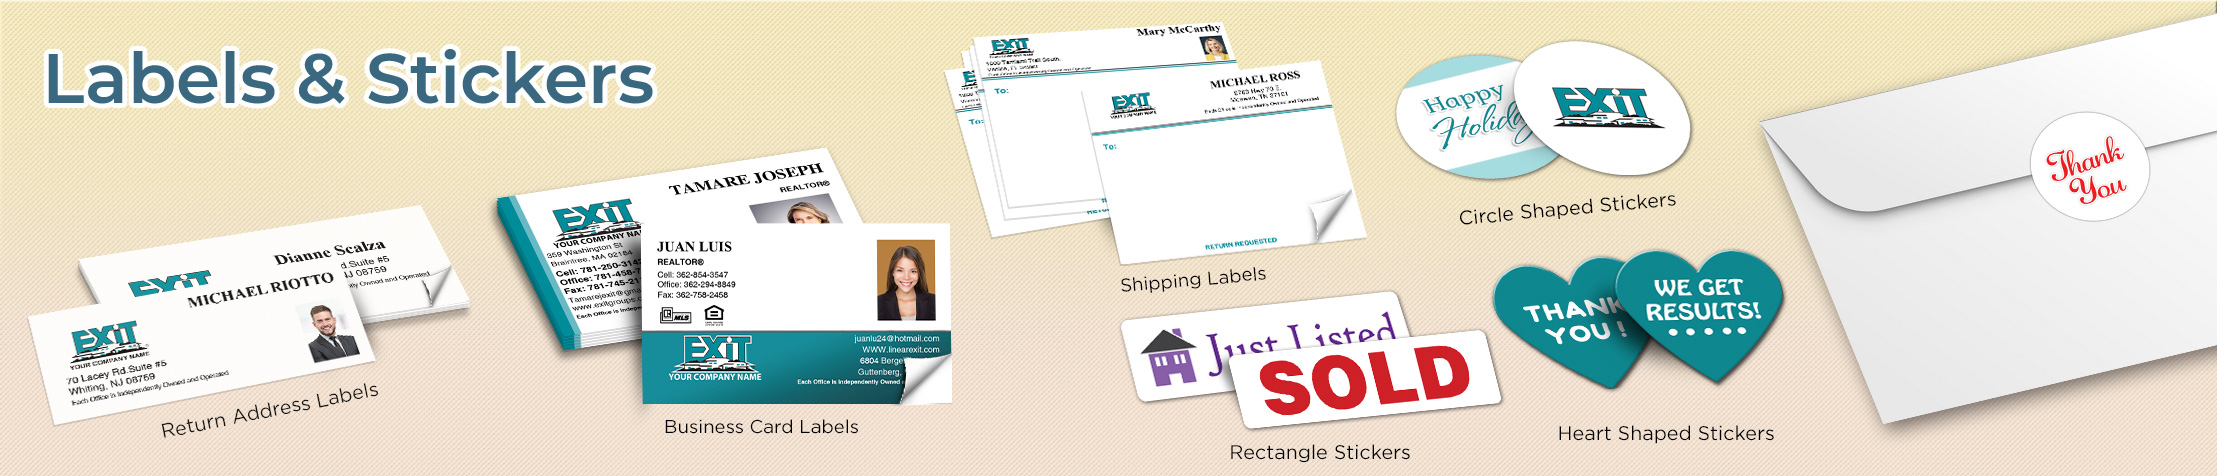 Exit Realty Real Estate Labels and Stickers - Exit Realty approved vendor business card labels, return address labels, shipping labels, and assorted stickers | BestPrintBuy.com